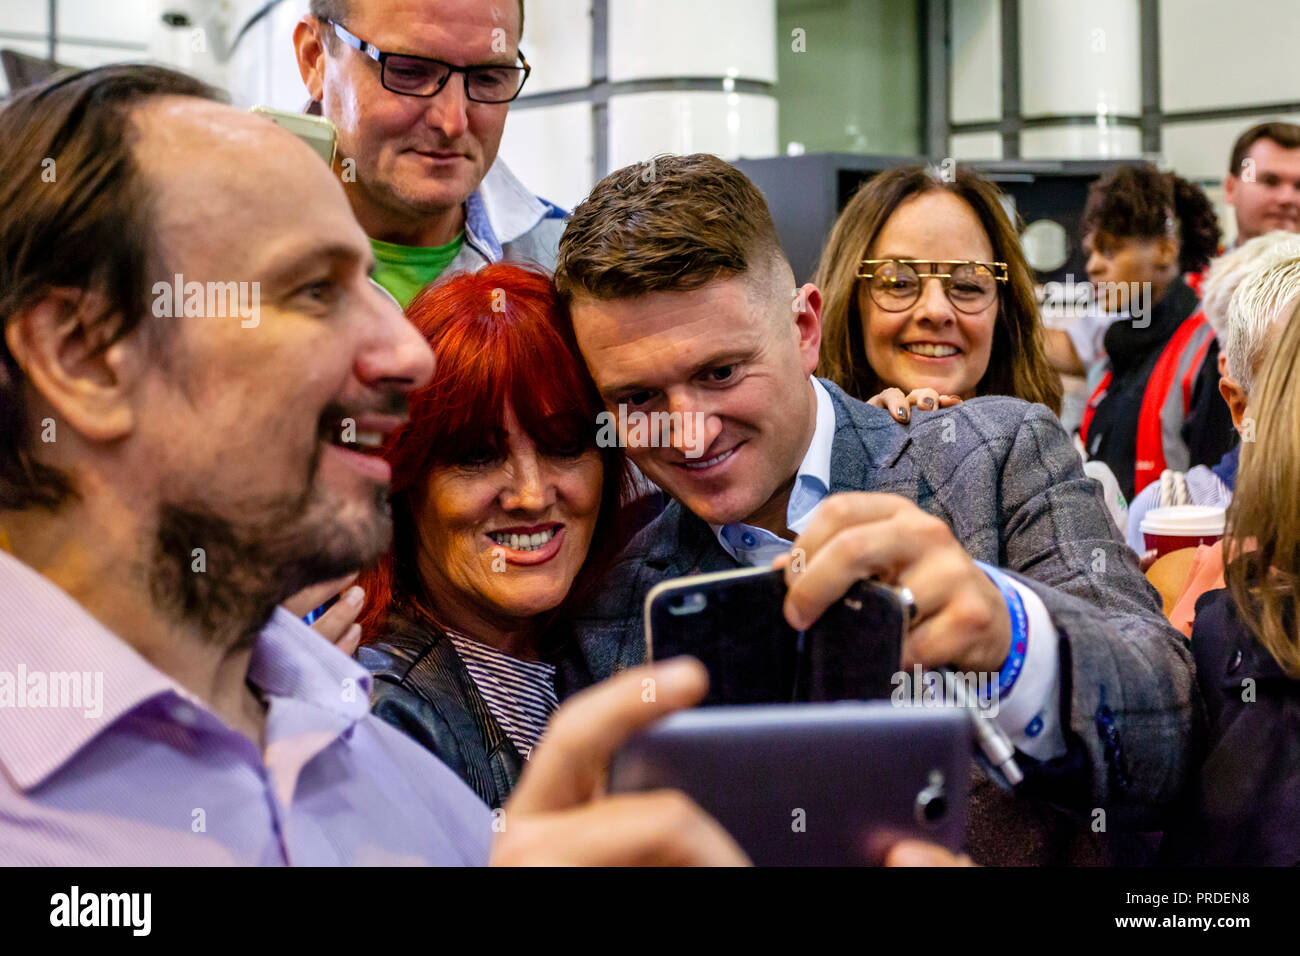 Right Wing Activist Tommy Robinson Poses For Selfies With His Supporters After His Contempt Of Court Charge At The Old Bailey Is Adjourned, London, UK - Stock Image